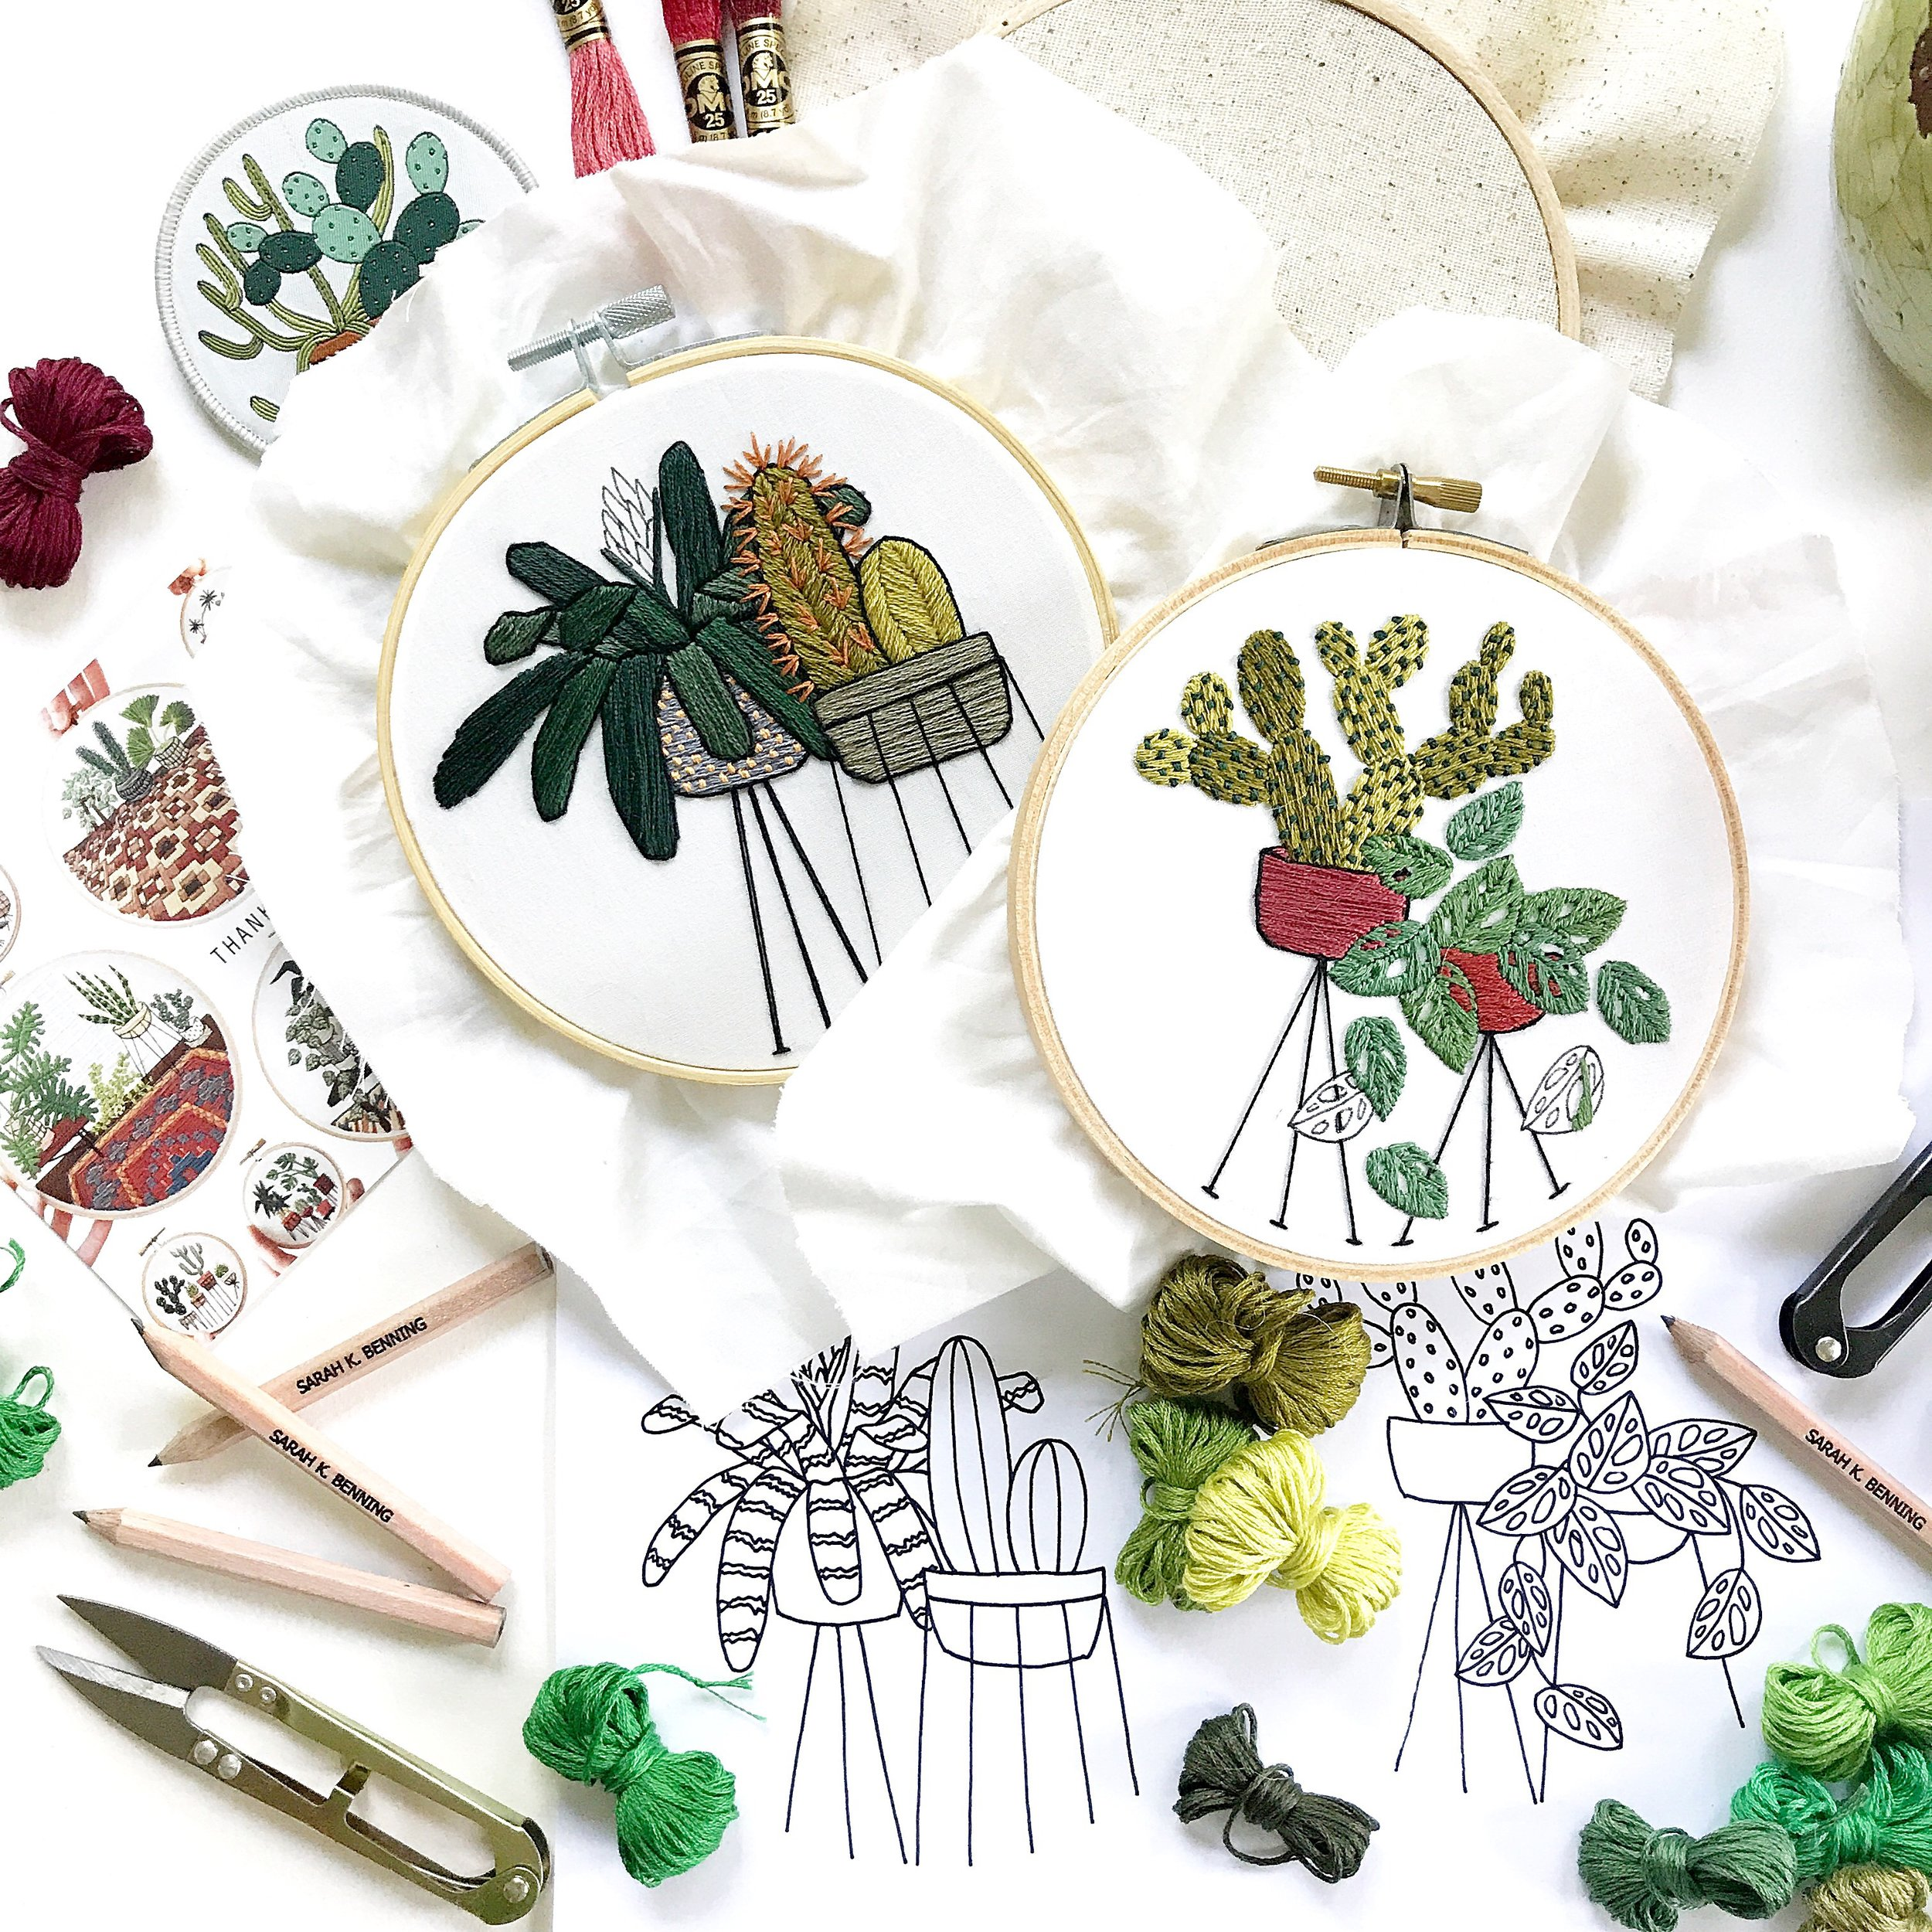 March 30, 2019, 12 - 4 pm,NHIA Sharon Campus (Sharon, NH) - Please join me for an afternoon of Botanical Drawing for Contemporary Embroidery!I will be bringing along some of my favorite plants for participants to draw inspiration from for their one of a kind personal embroidery patterns.All embroidery materials will be included, though participants are encouraged to bring their own sketch books and any preferred drawing materials. No experience is necessary.